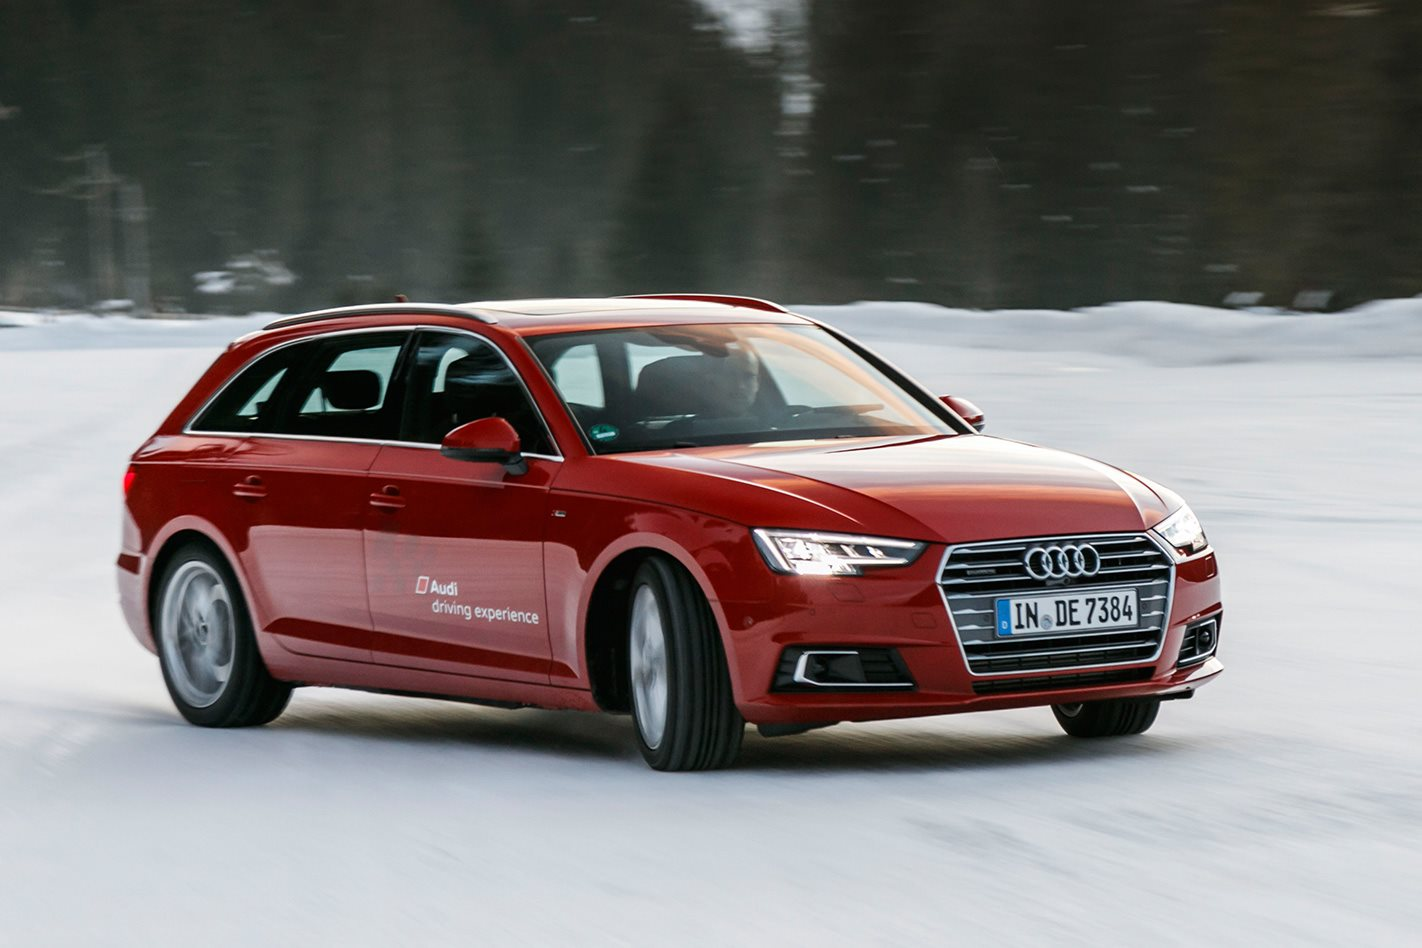 2016 audi a4 avant 2 0 tfsi quattro review. Black Bedroom Furniture Sets. Home Design Ideas